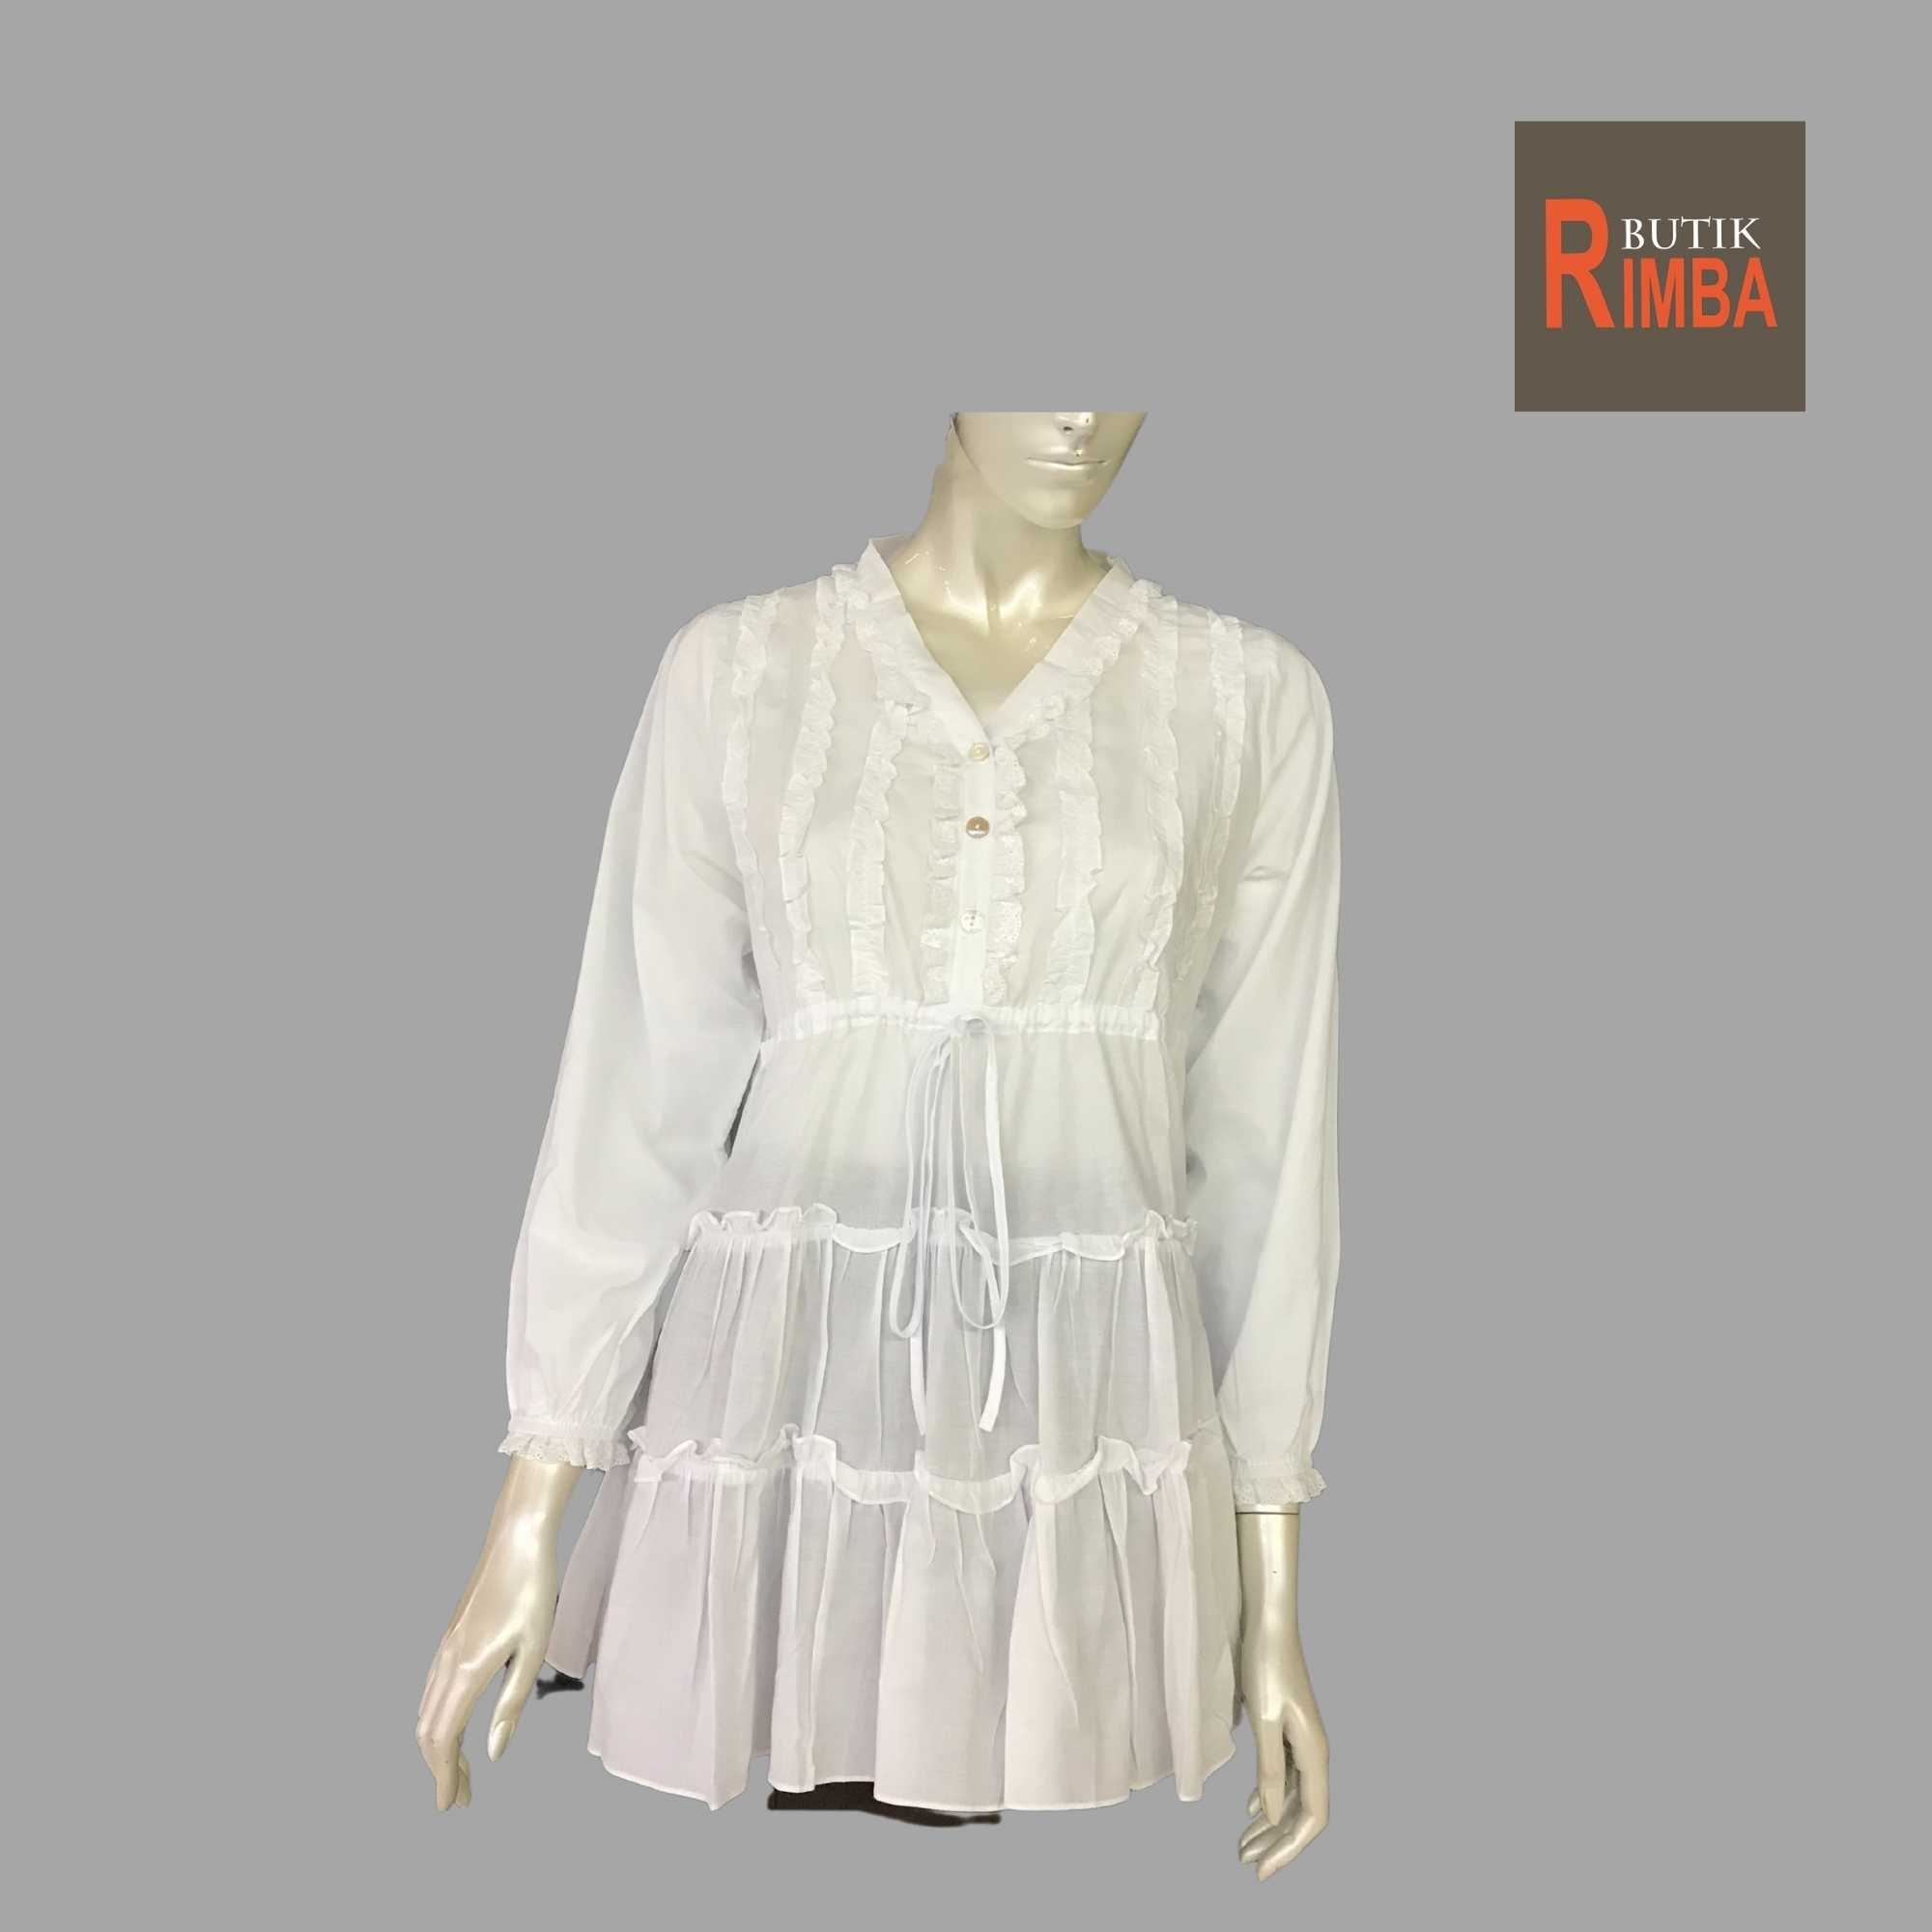 WOMEN CASUAL AND COMFORTABLE WHITE BLOUSE COTTON FREE SIZE PATTERN 19